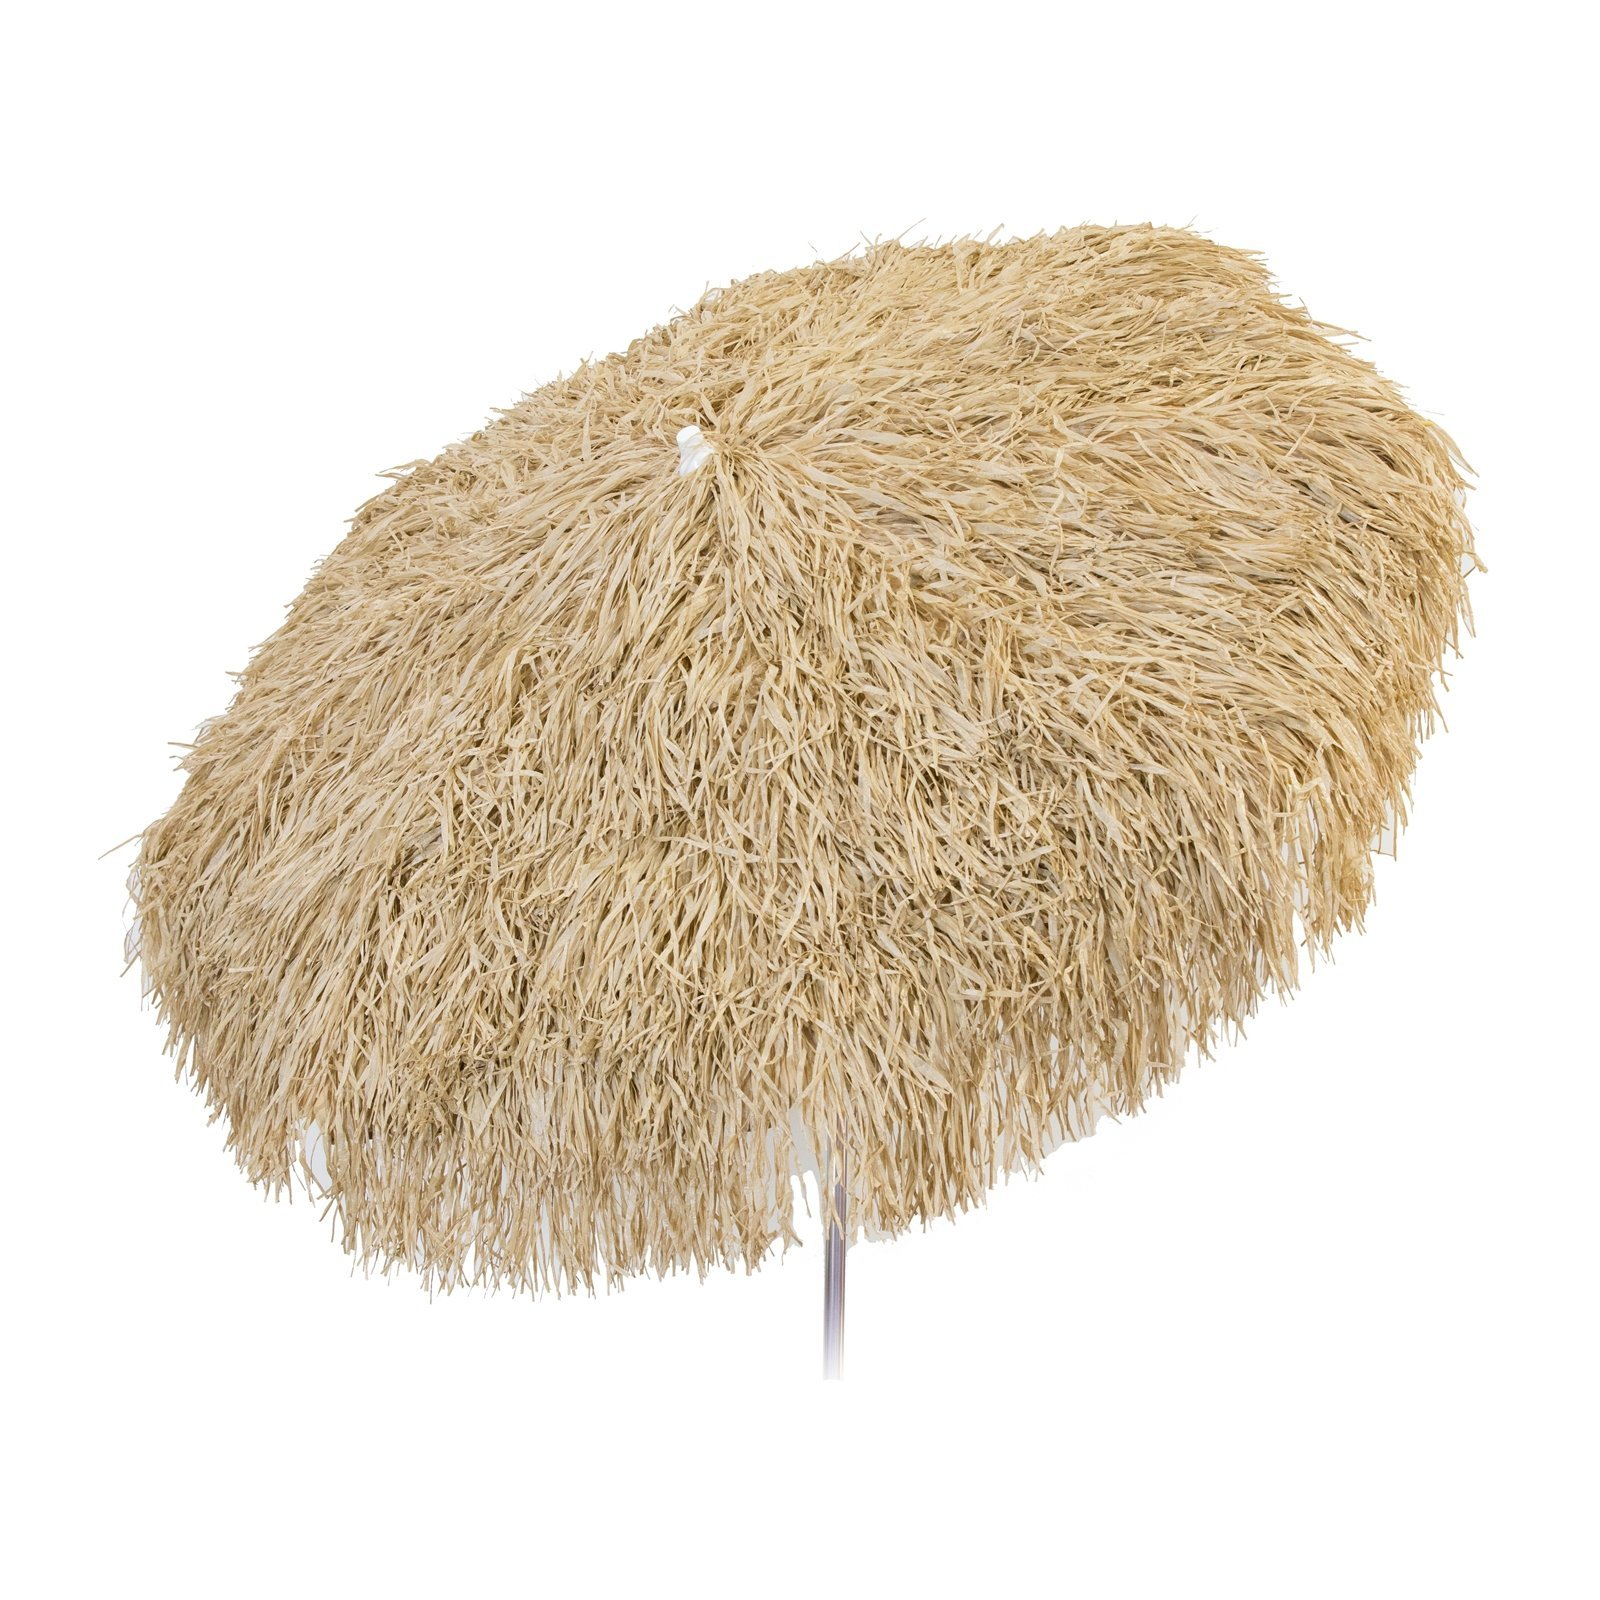 Palapa Tiki Push/Tilt Umbrella 6 foot - Brown Patio Pole